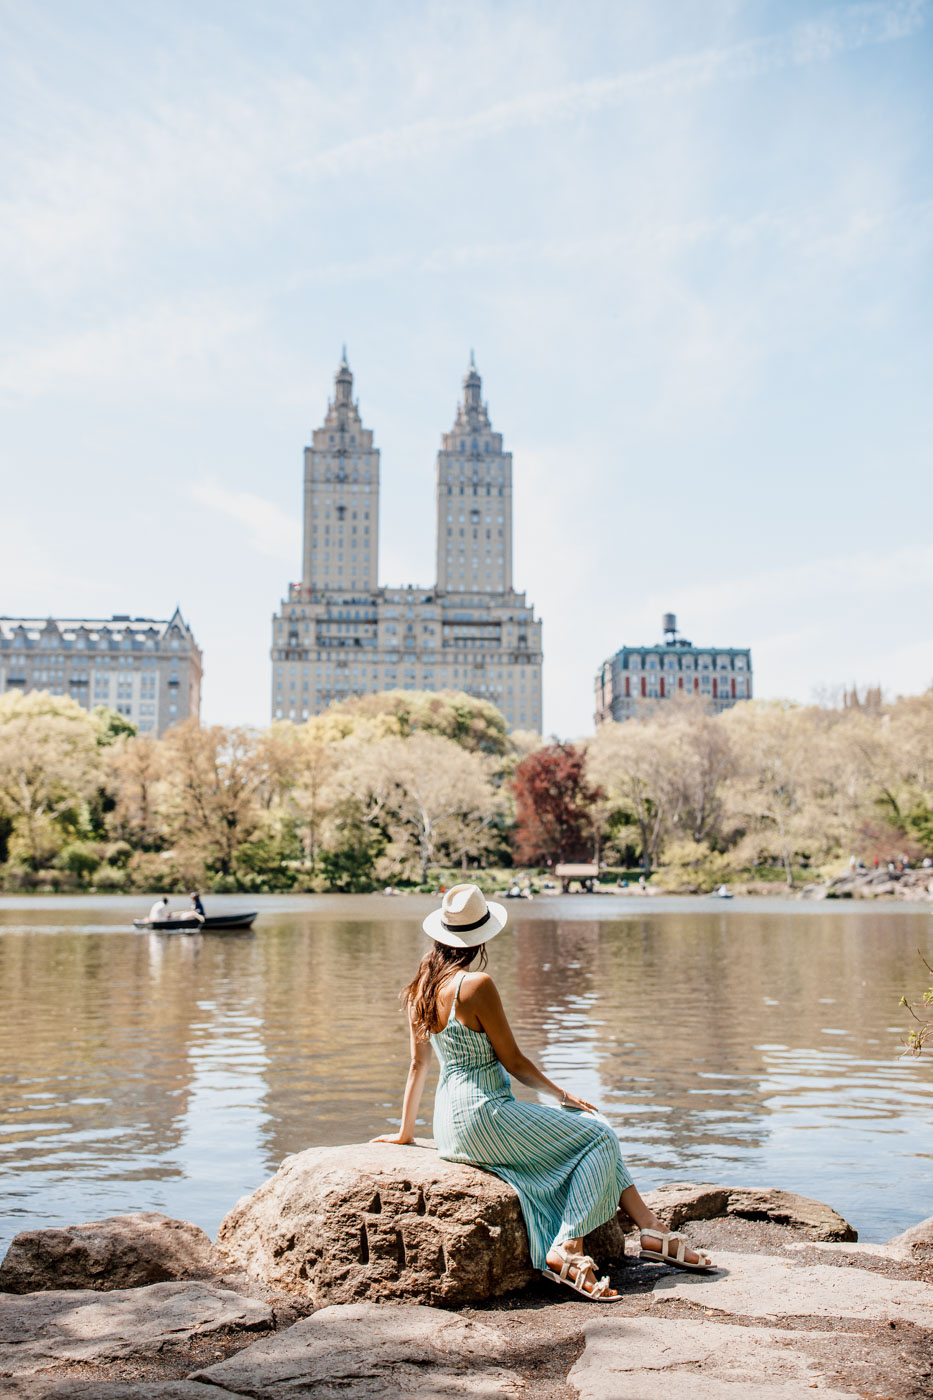 nyc instagram spots: central park nyc